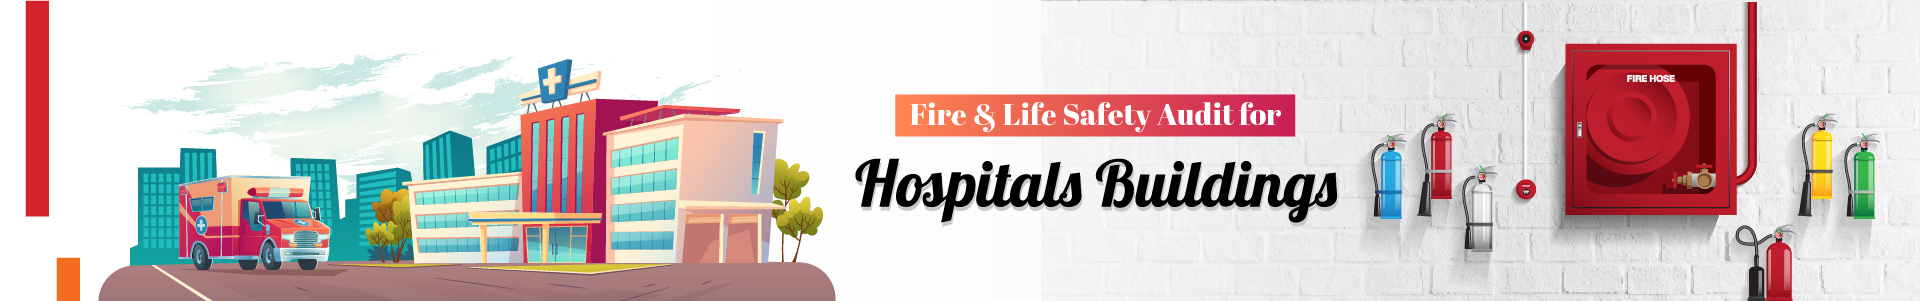 fire-and-life-safety-audit-for-hospitals-buildings